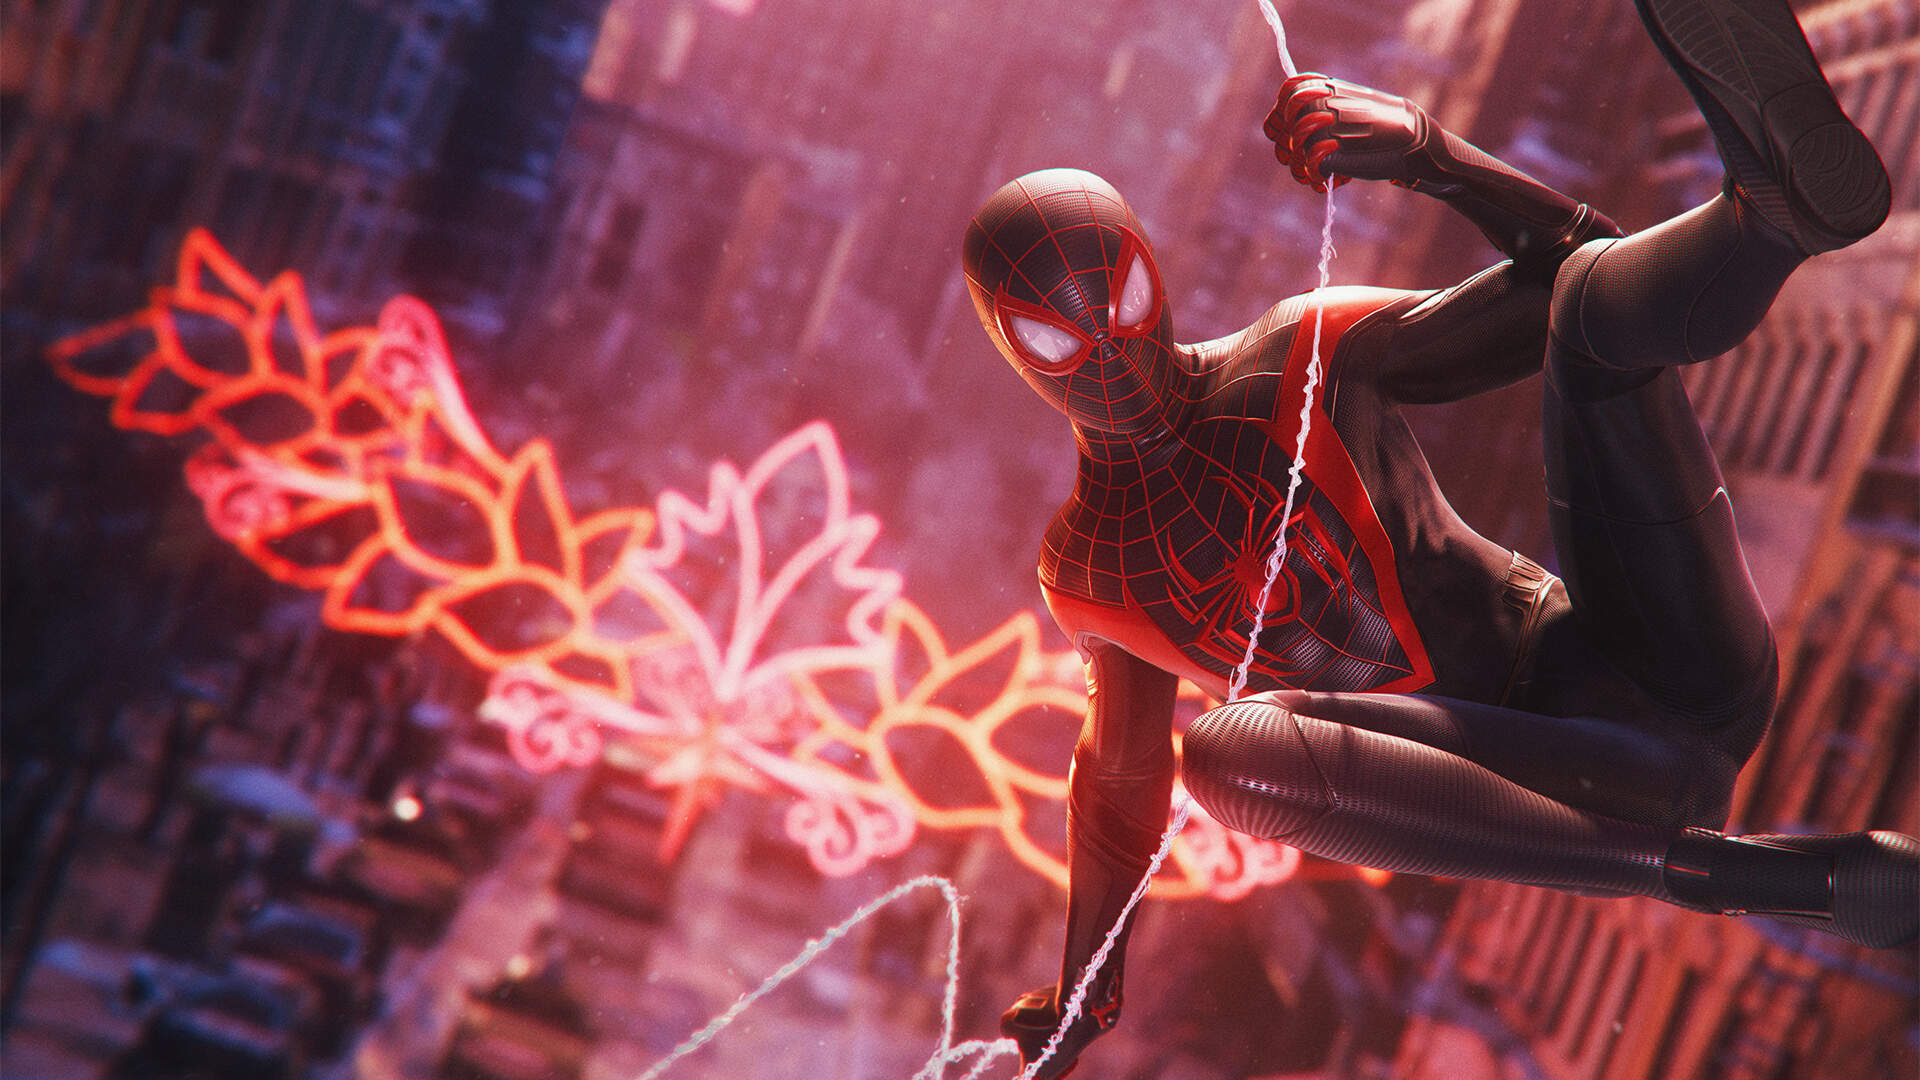 Today's PS5 Reveal Falls Just Short of the Greatness of Its E3 2015 Presentation